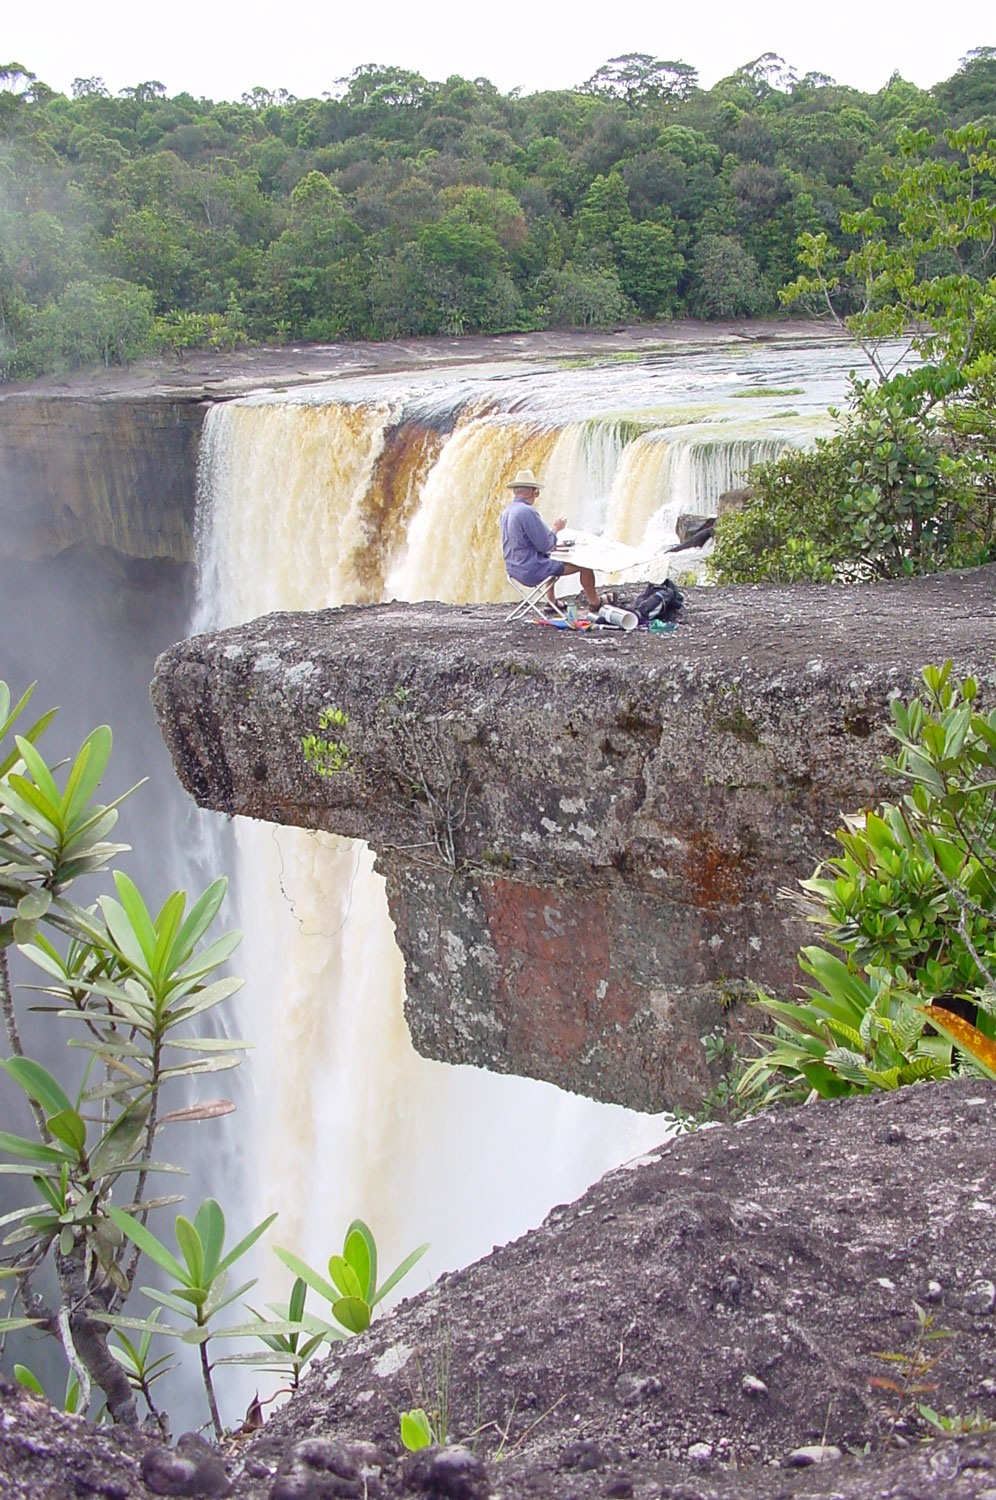 Tony Foster painting at Kaieteur Falls, Guyana, September 2002. Photo by Mike Nathan. Courtesy of Foster Art & Wilderness Foundation.